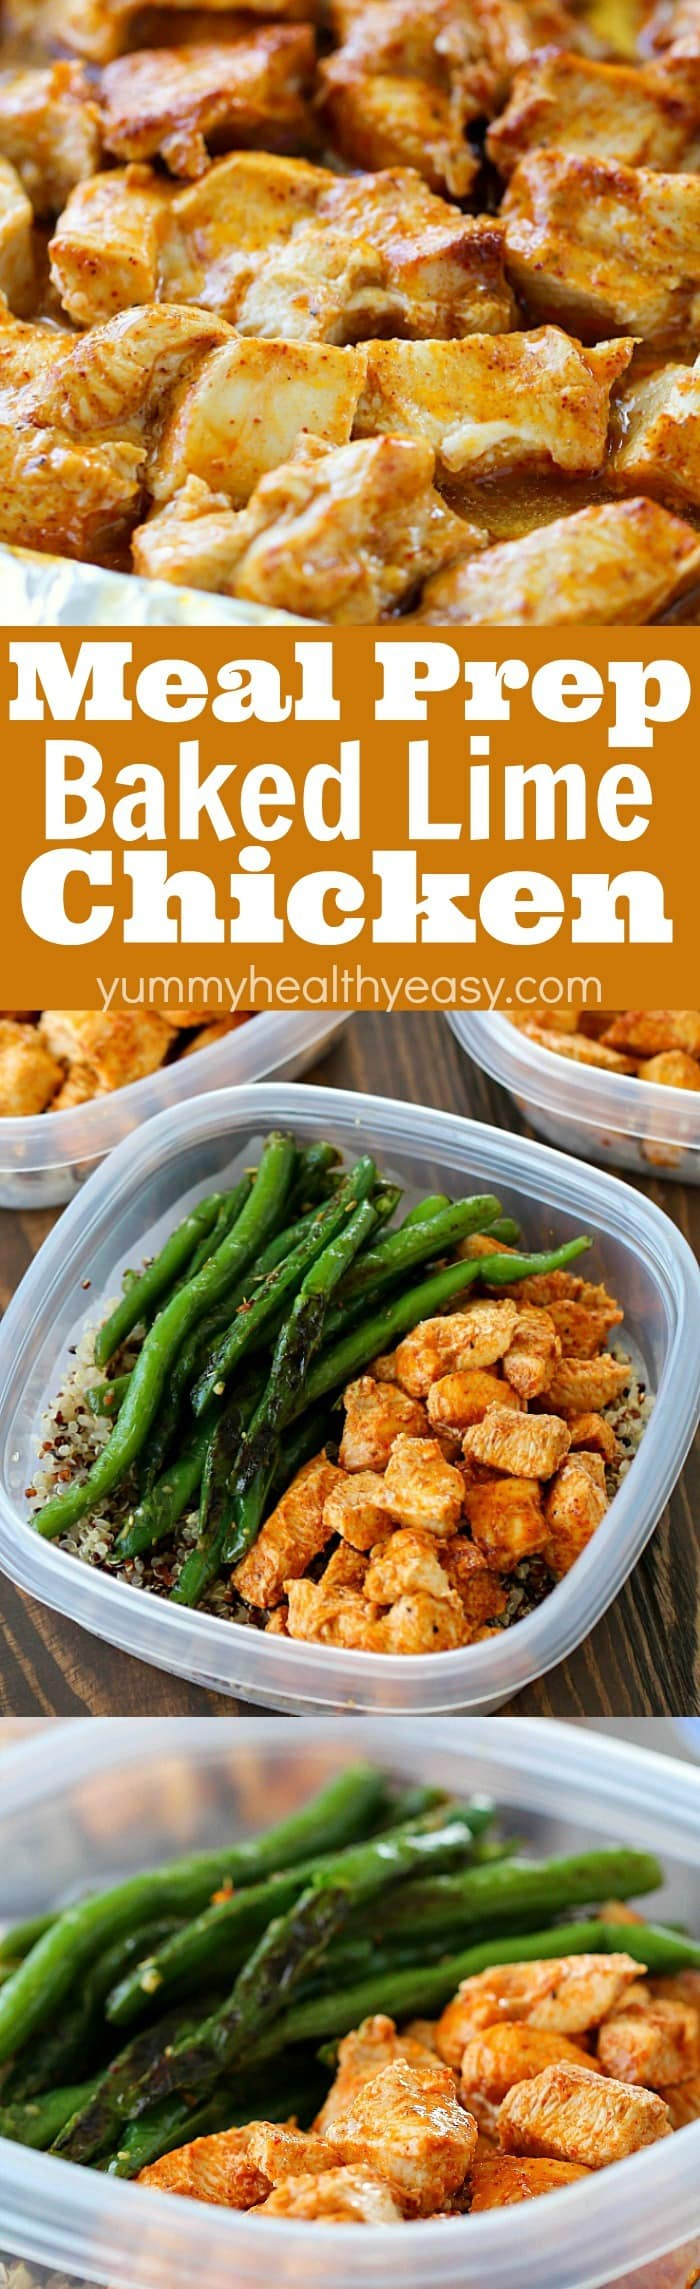 Healthy Baked Dinners  Meal Prep Baked Lime Chicken Bowls Yummy Healthy Easy